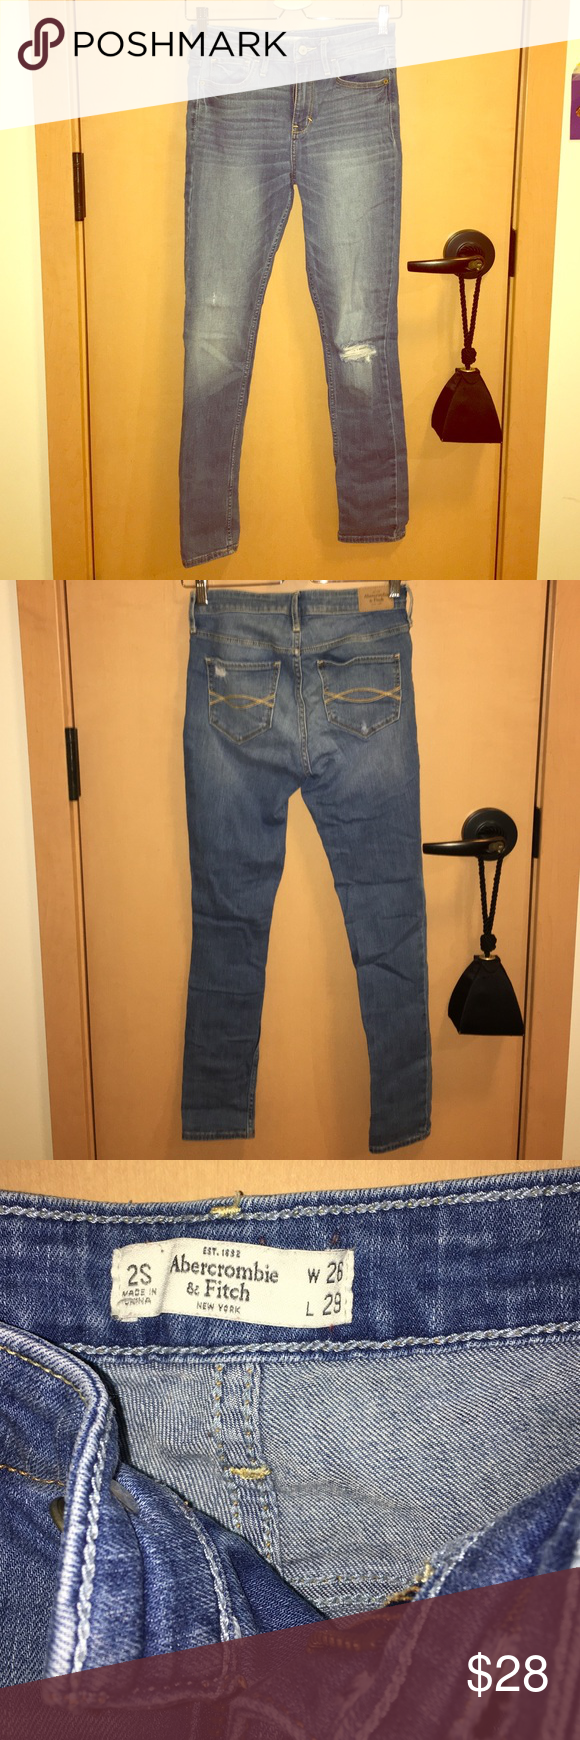 Abercrombie and Fitch ripped jeans Super cute Abercrombie and Fitch jeans, worn a couple times but still in very good shape. Abercrombie & Fitch Jeans Straight Leg